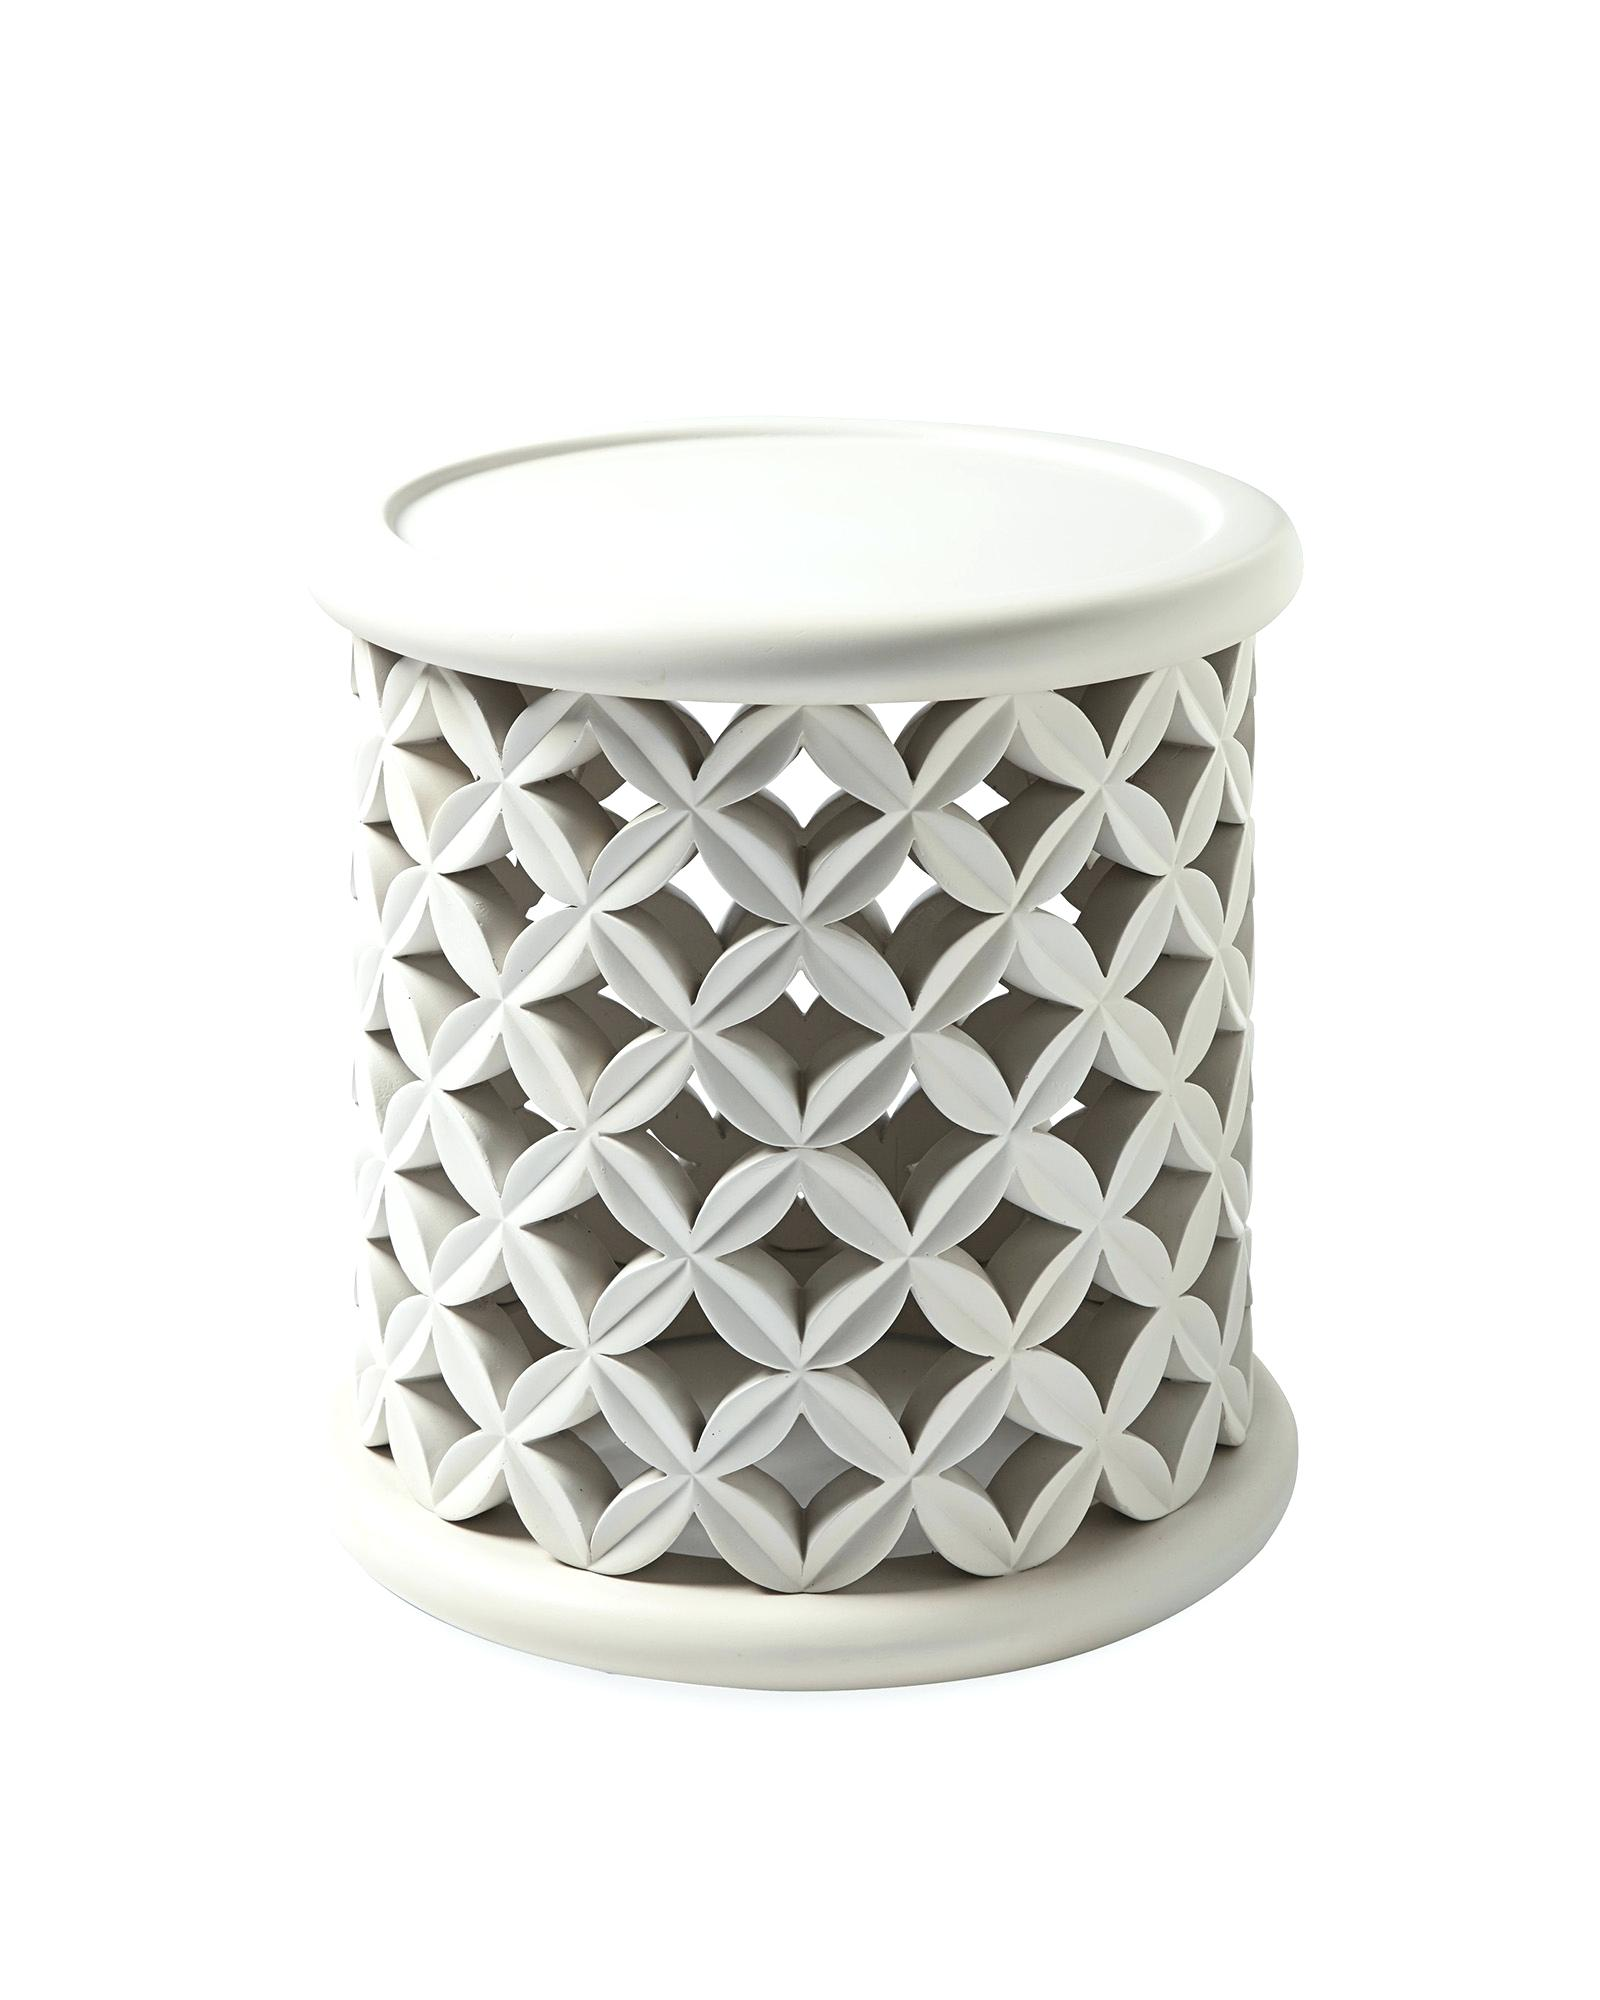 outdoor side table aumsocialconference target black mesh diy patio small kidney shaped legs for tables wood coffee tile transition inch wide console gooseneck lamp bedside